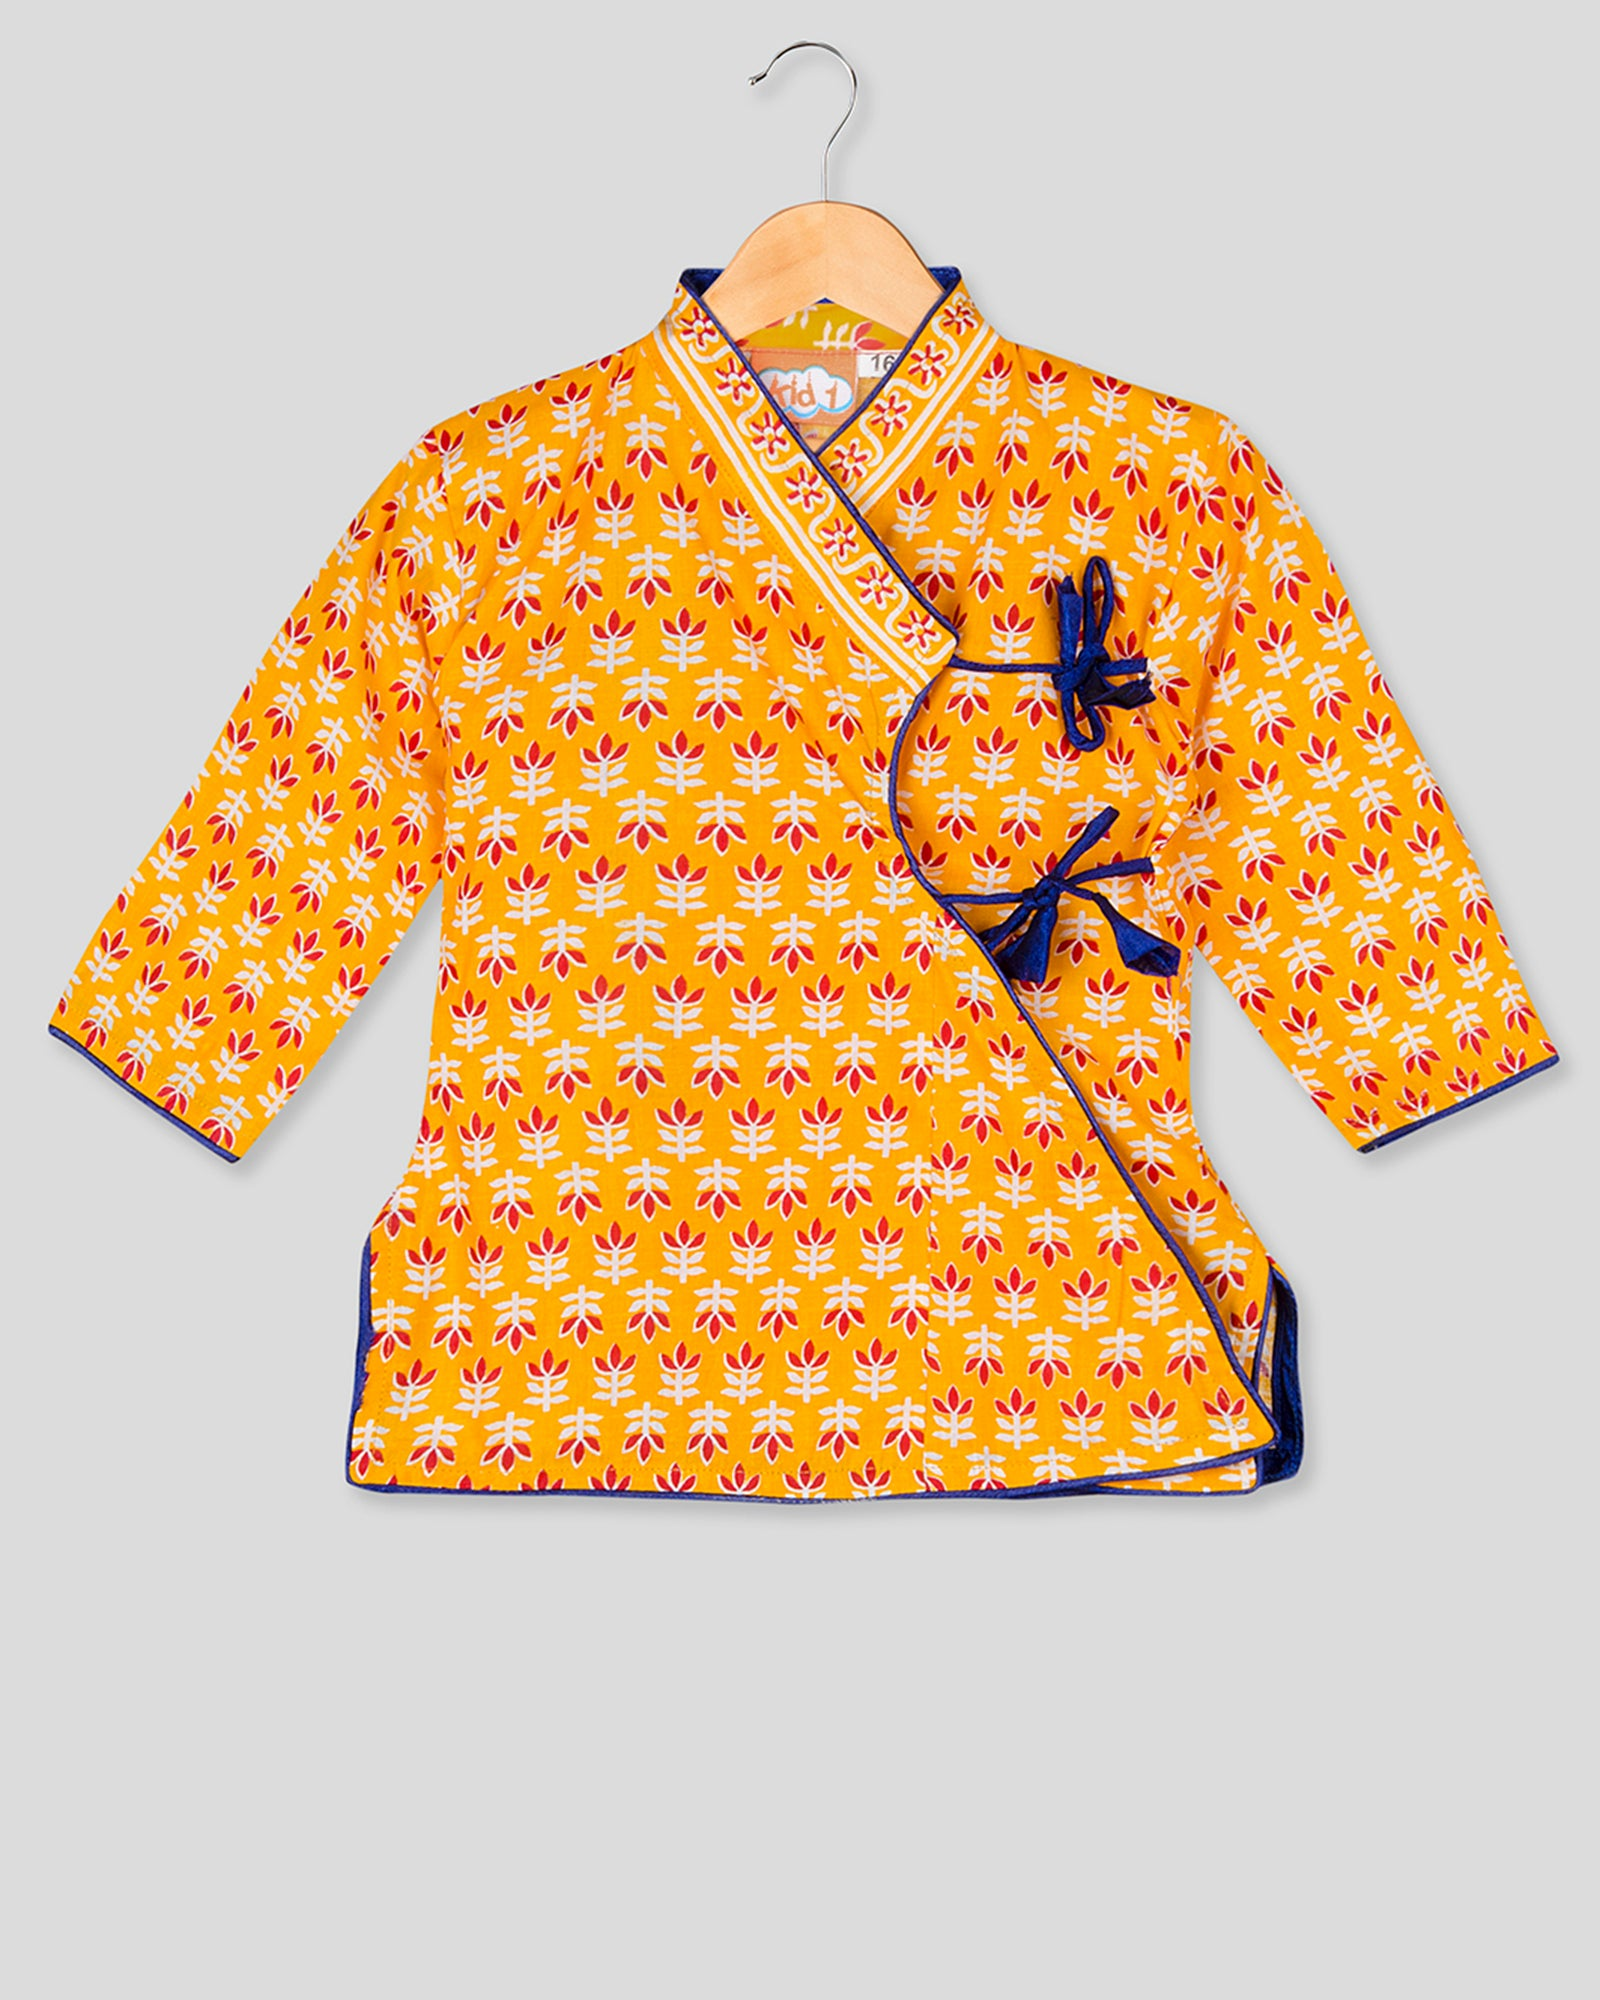 NEW ARRIVALS! Anghrakha Full Sleeves Yellow Kurta Dhoti Set